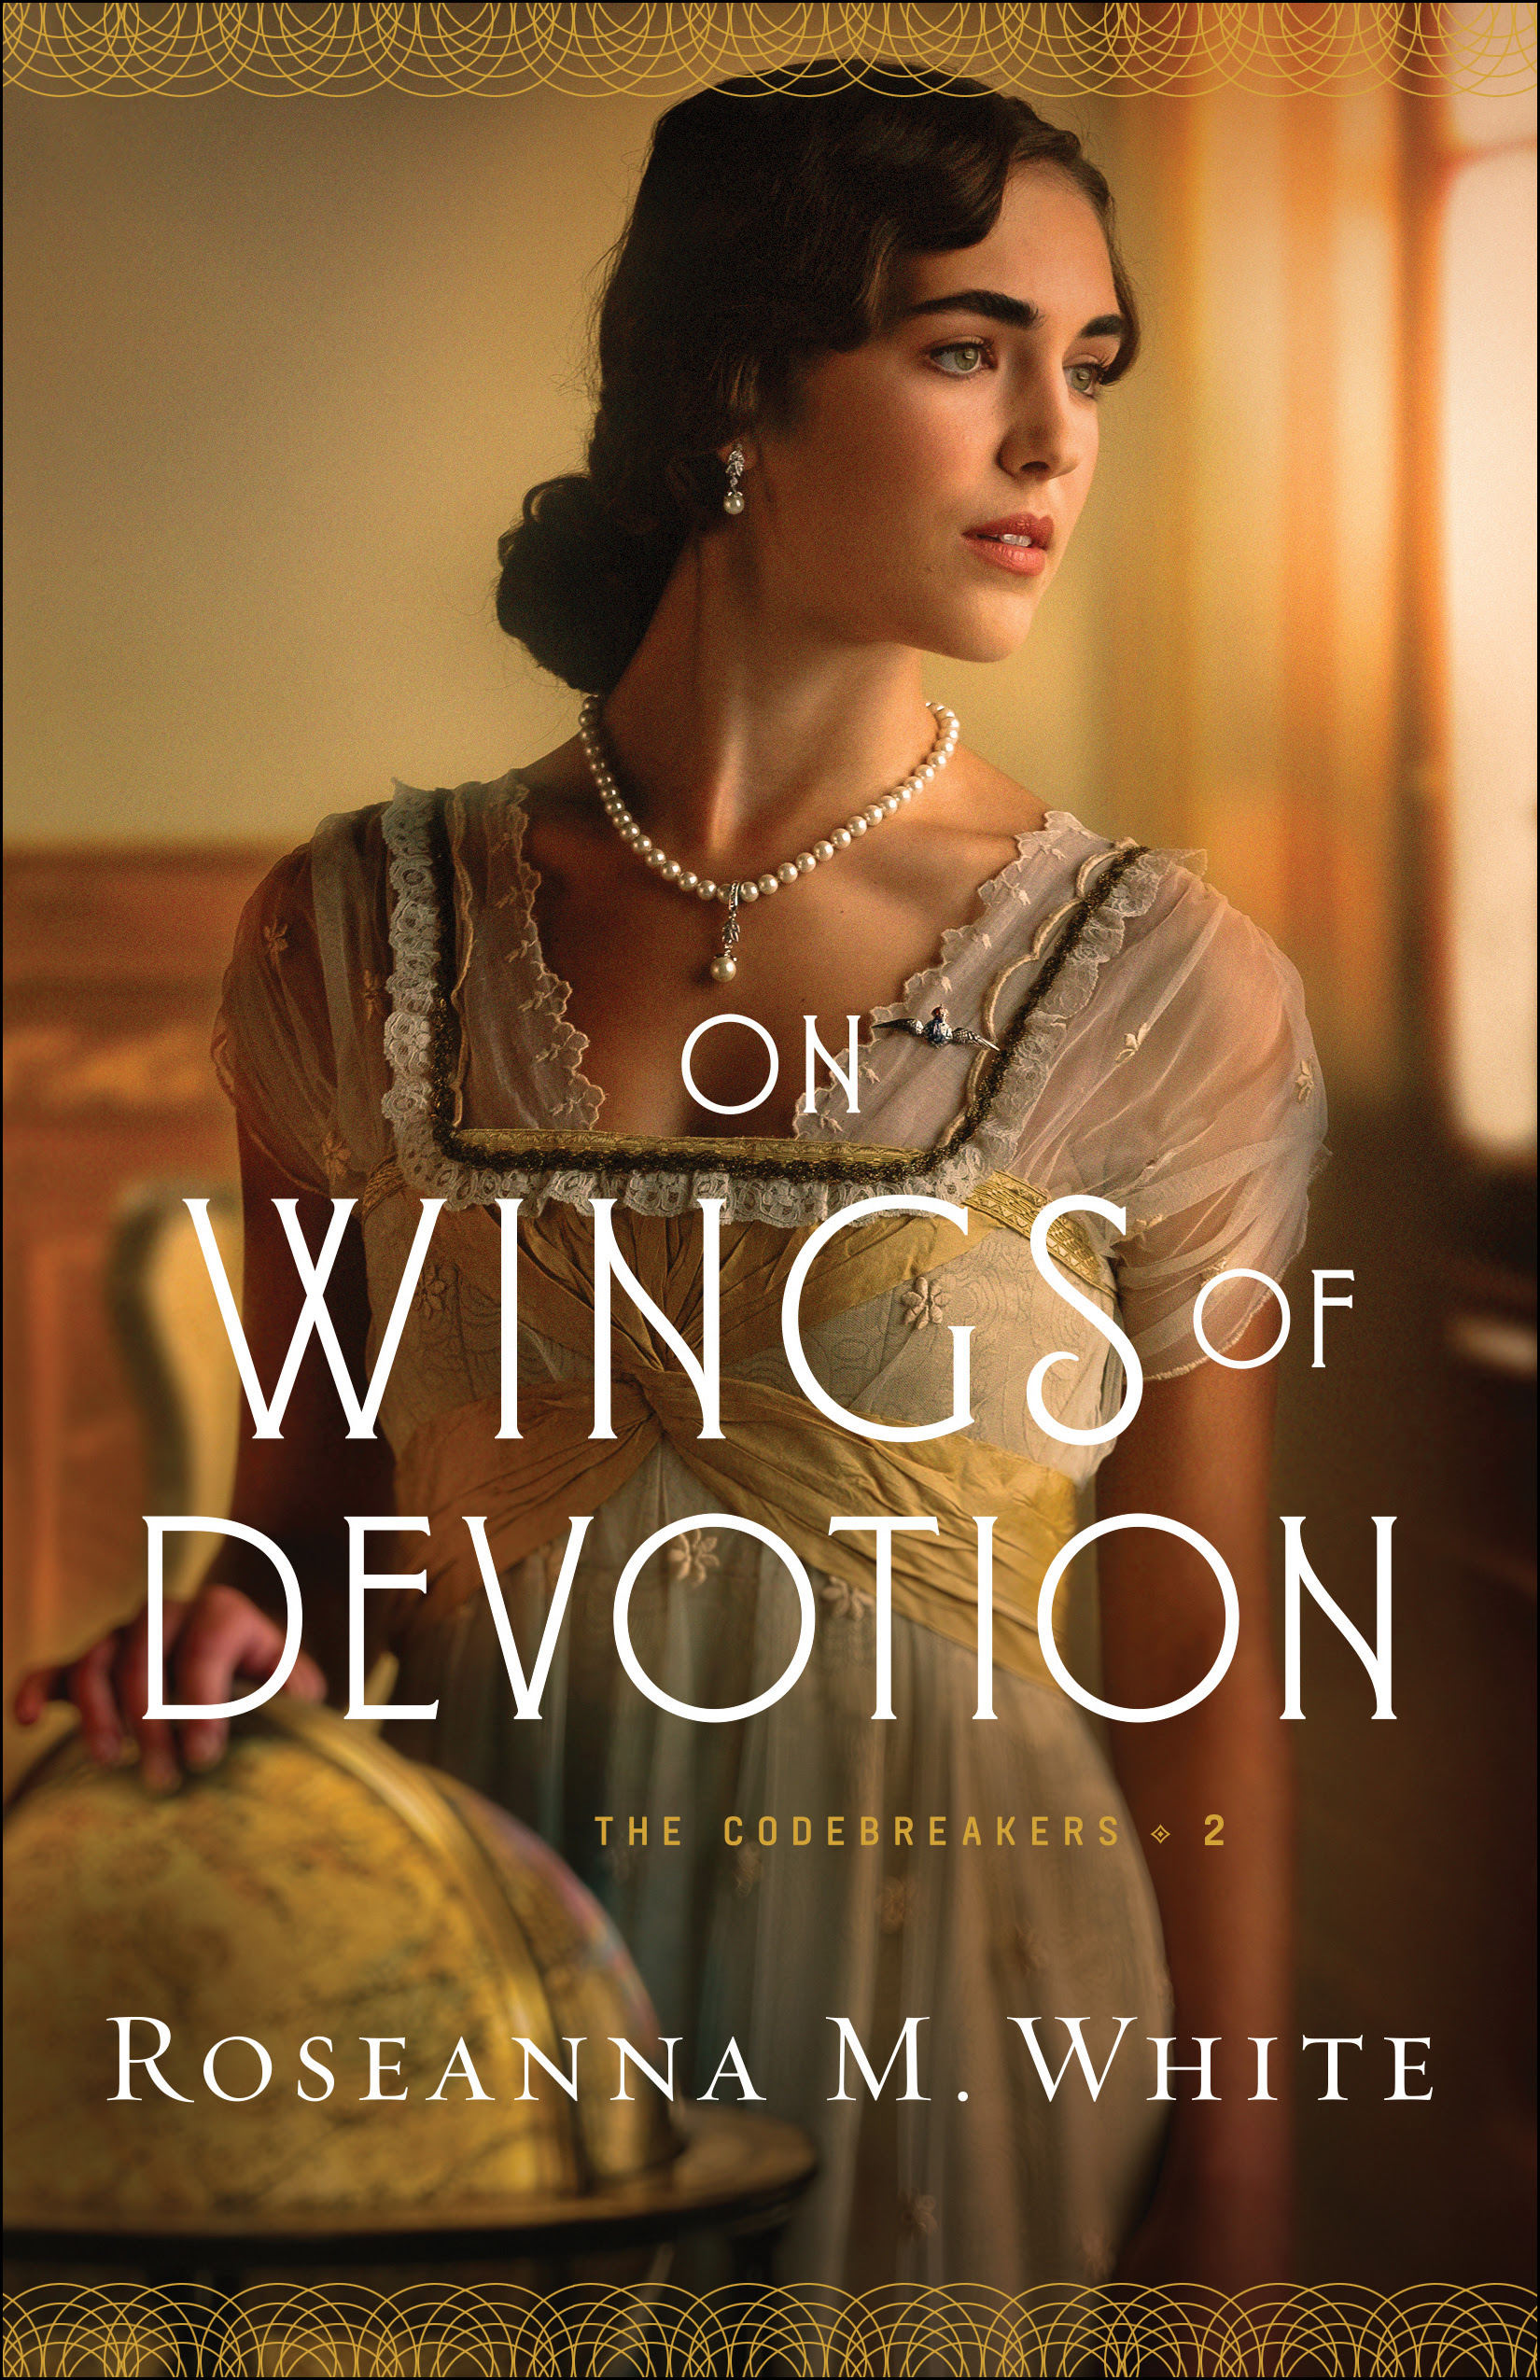 Book review of On Wings of Devotion by Roseanna M White (Bethany House) by papertapepins